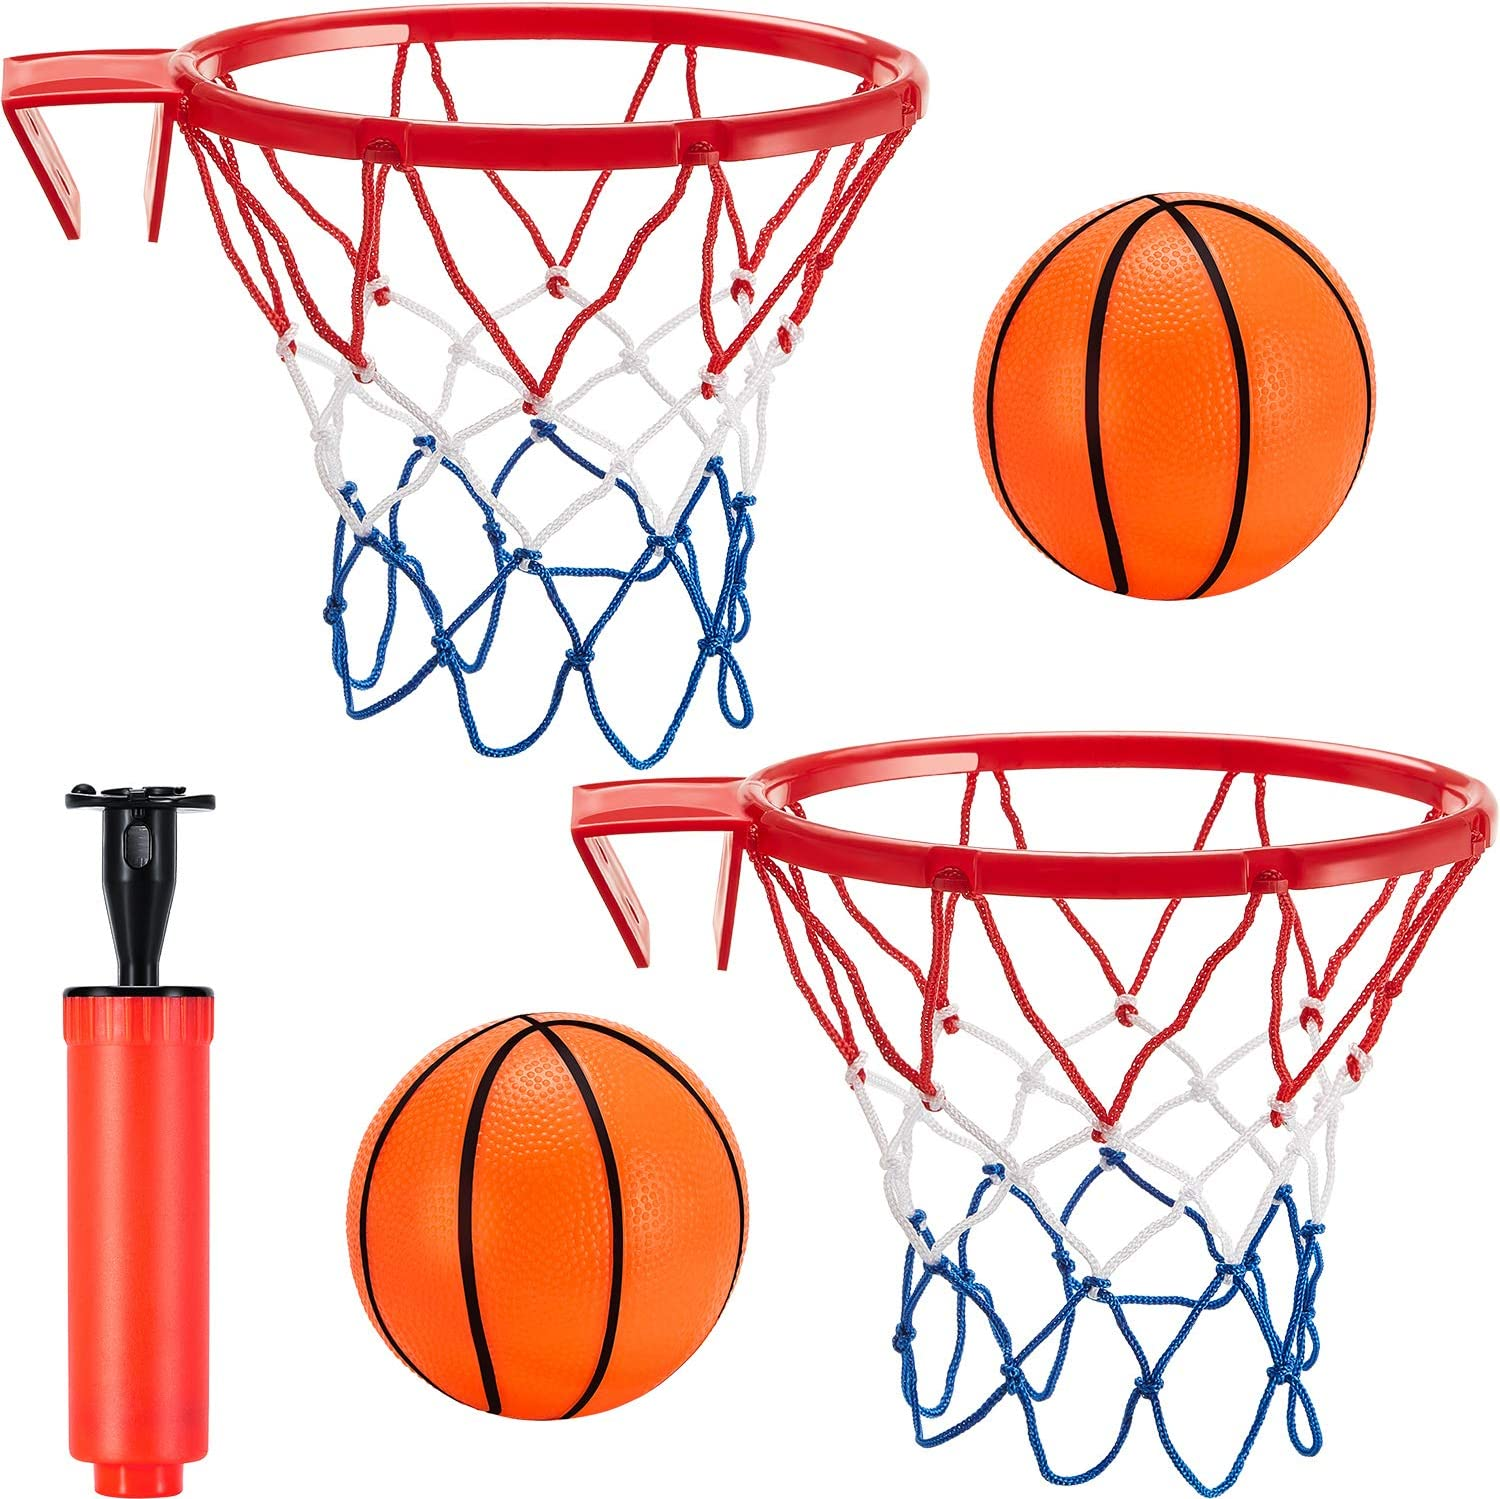 5 Pieces Mini Basketball Hoop Set, Includes 2 Pieces Toy Basketball Hoop Net, 2 Pieces Mini Inflatable Basketball and Inflation Pump for Bedroom Bathroom Toilet Office Desktop Basketball Game Favors